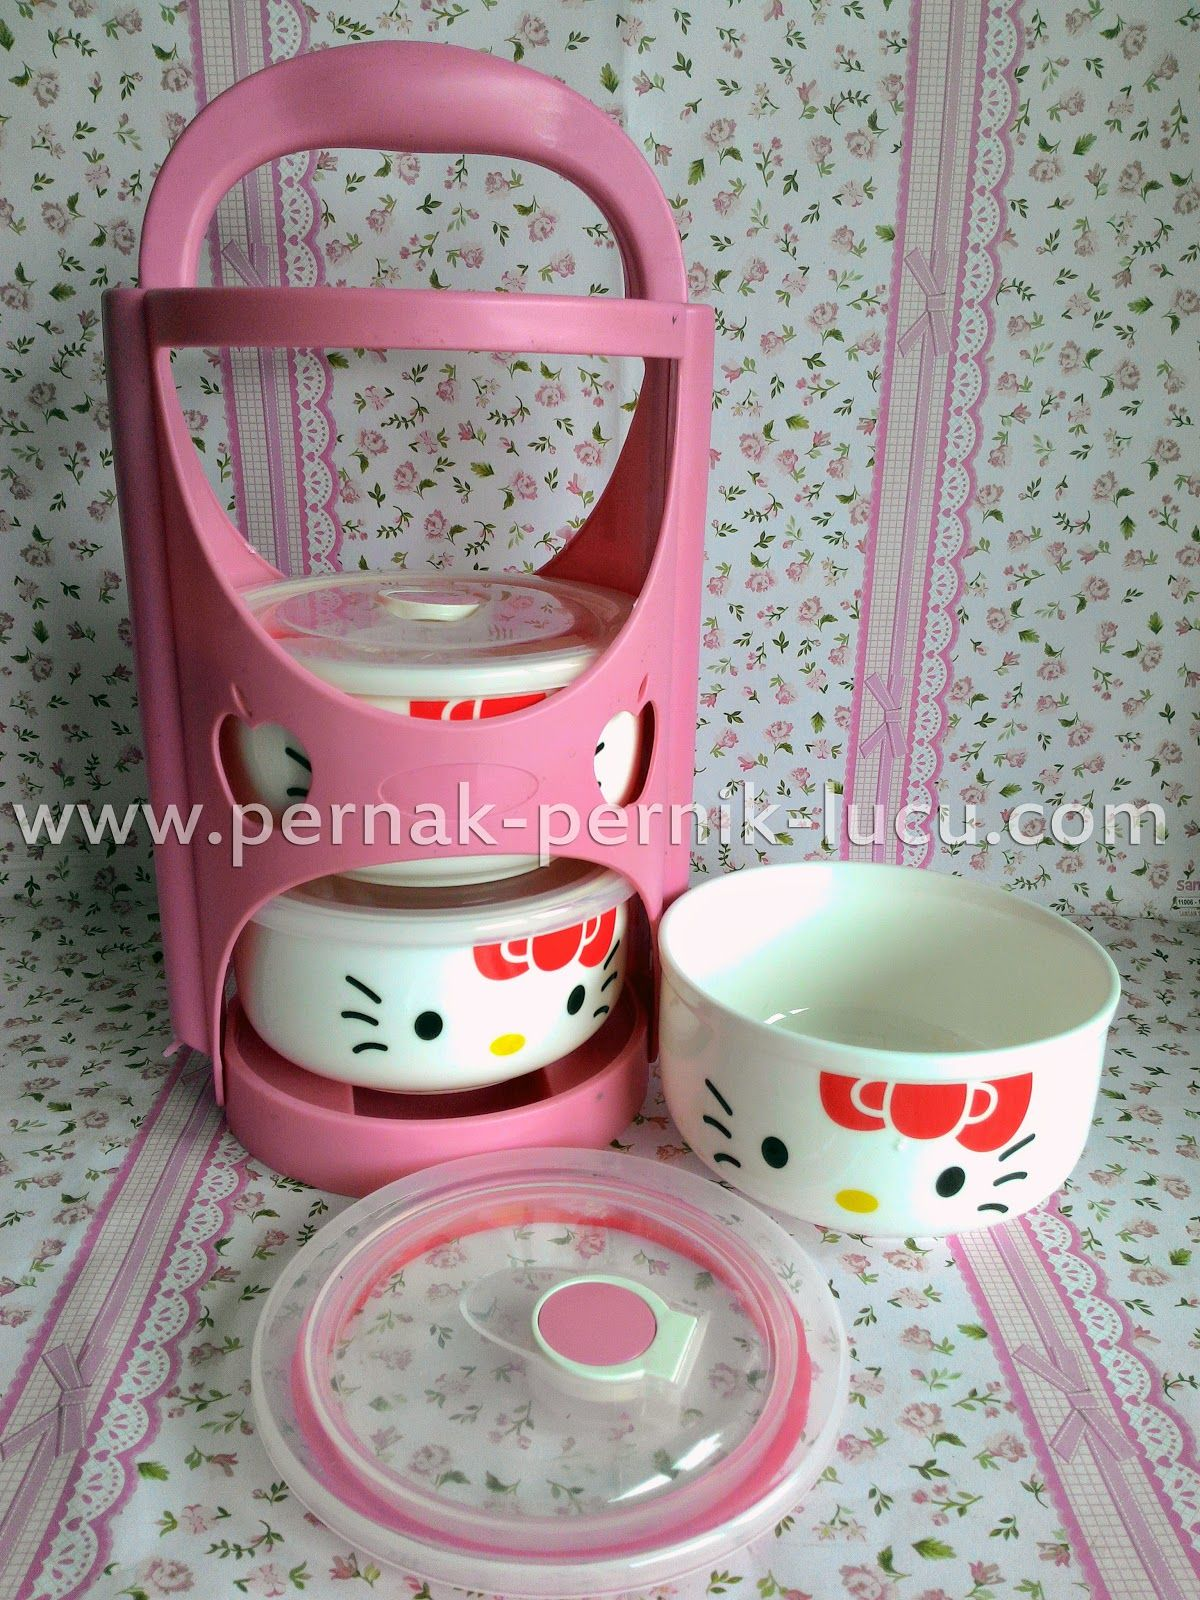 Tableware Hello Kitty Pernak Pernik Lucu Pinterest Tableware